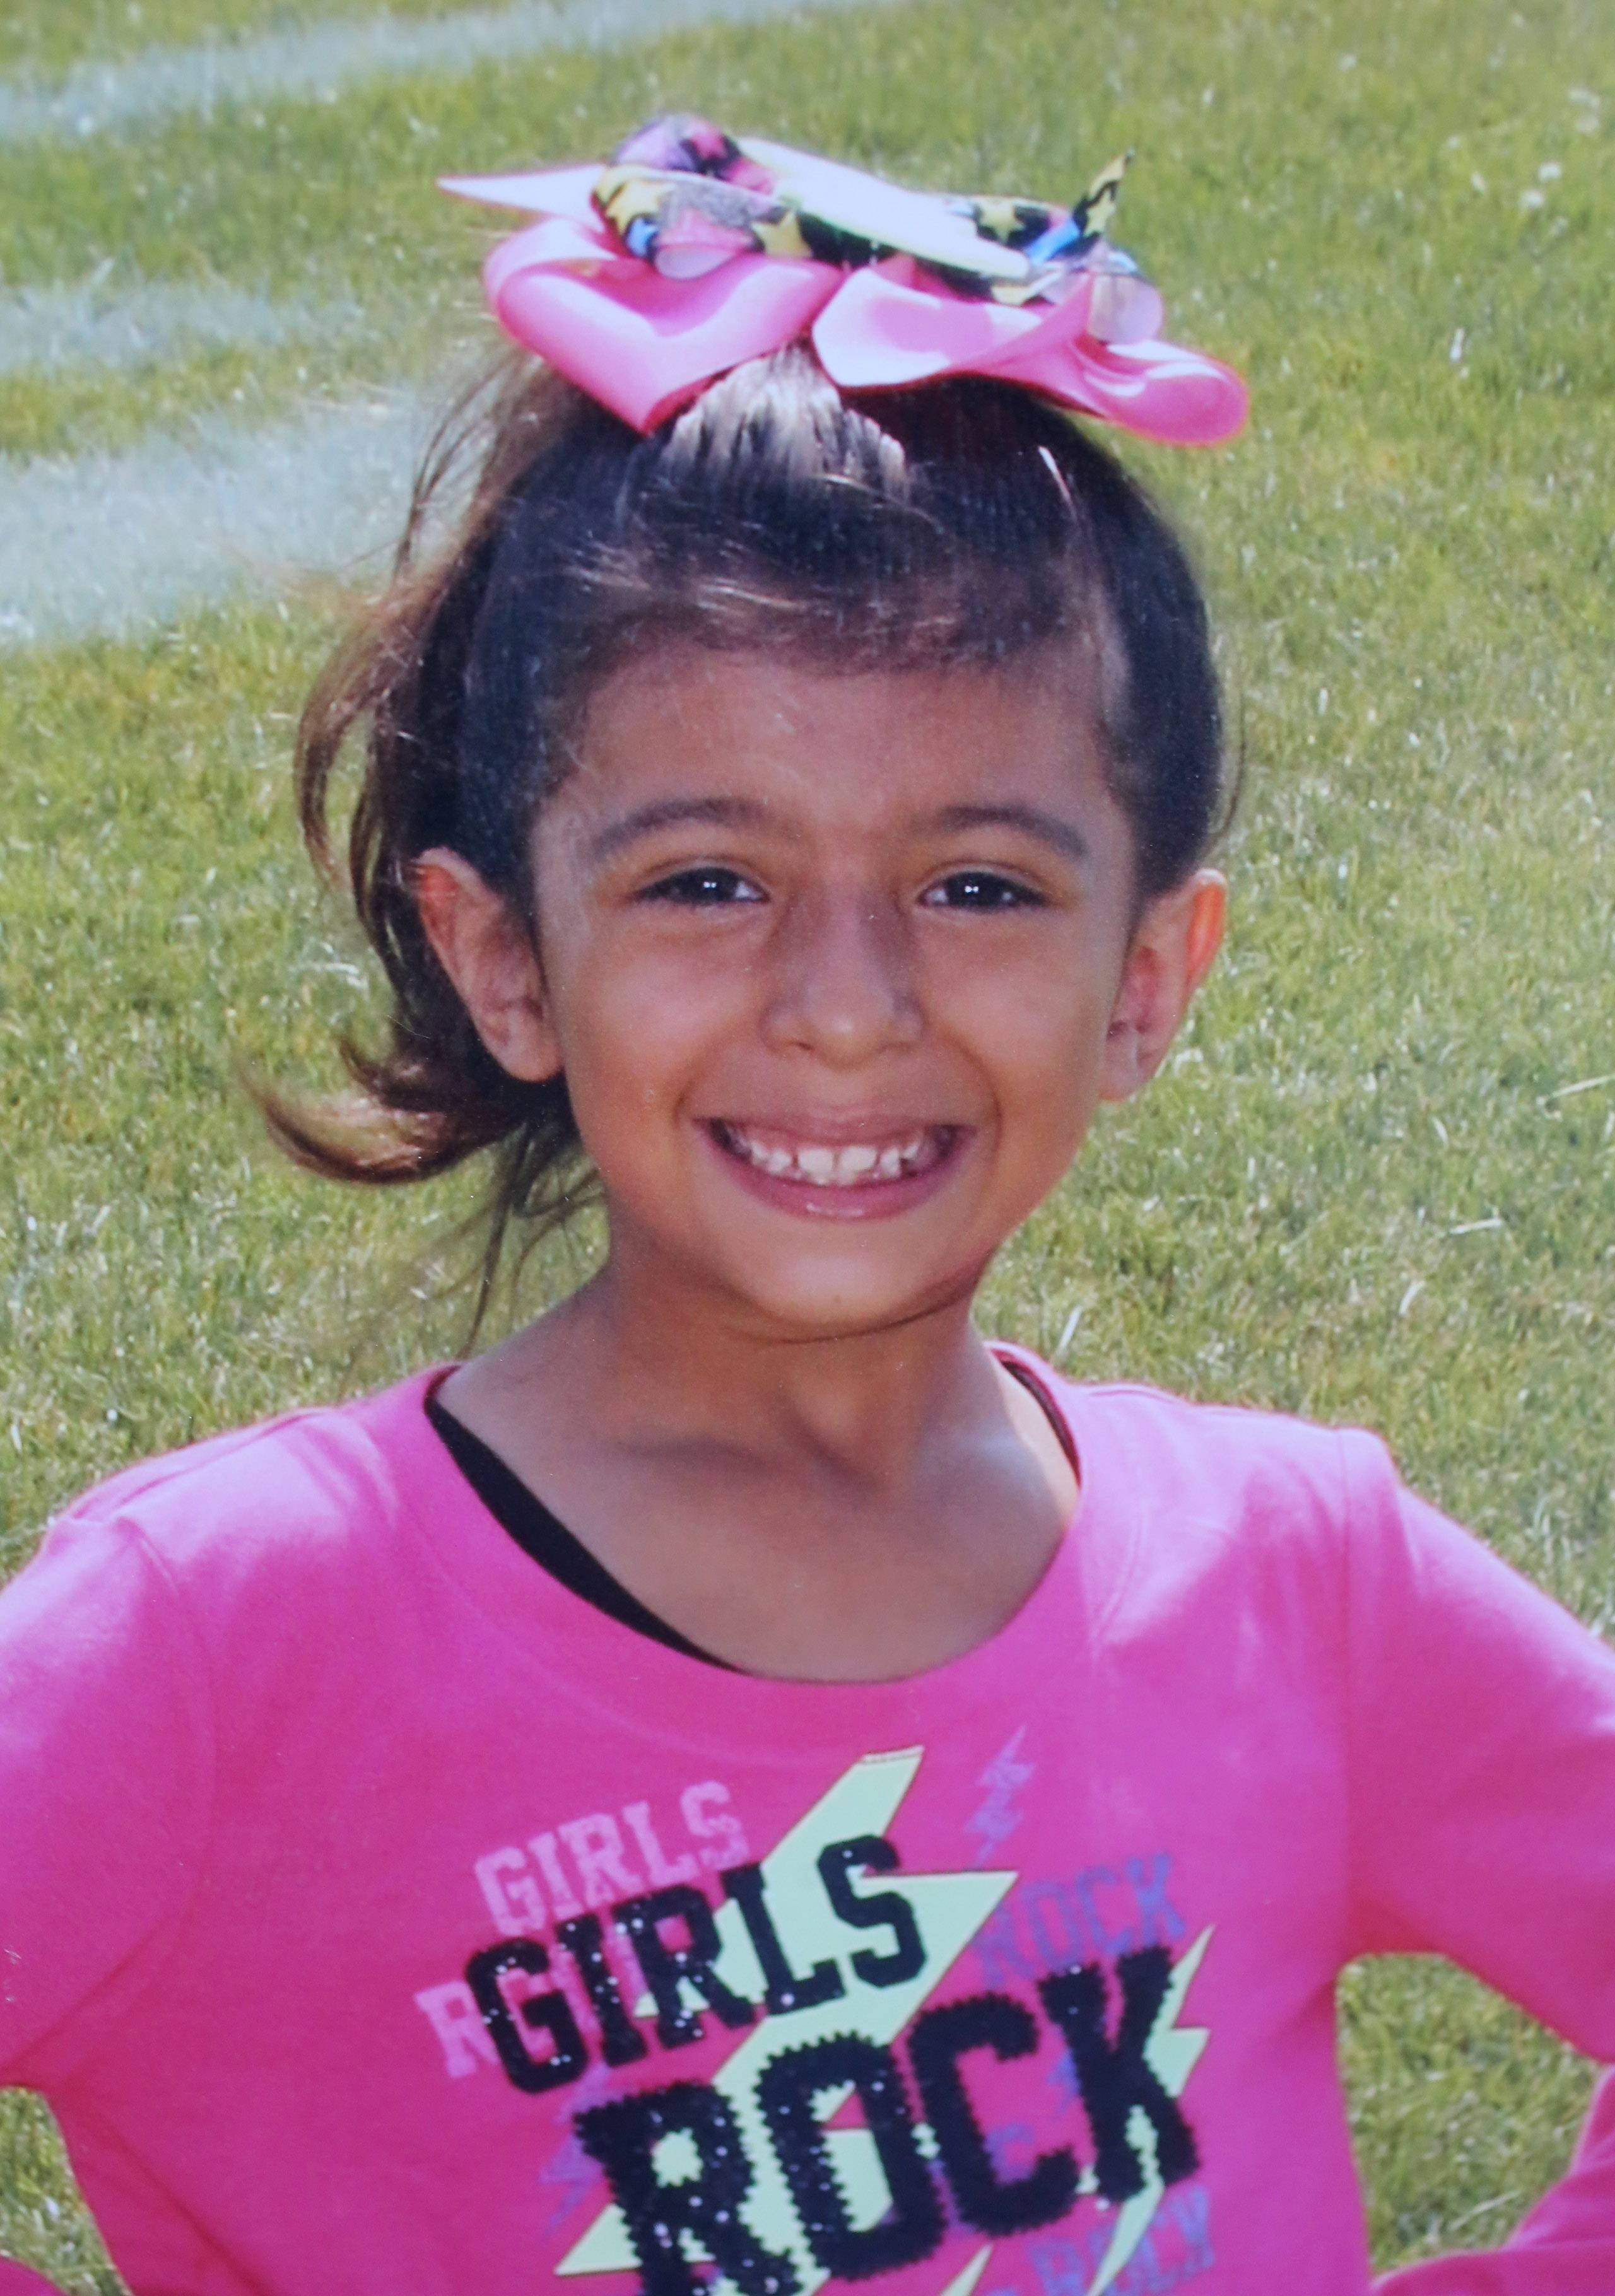 Alyssa Carranza, 7, and her father, Francisco Carranza, 36, died after he drove in front of a train at Route 134 and Porter Road in Round Lake Park on Jan. 22, according to police. Authorities say Carranza's blood-alcohol level was four times the legal limit.